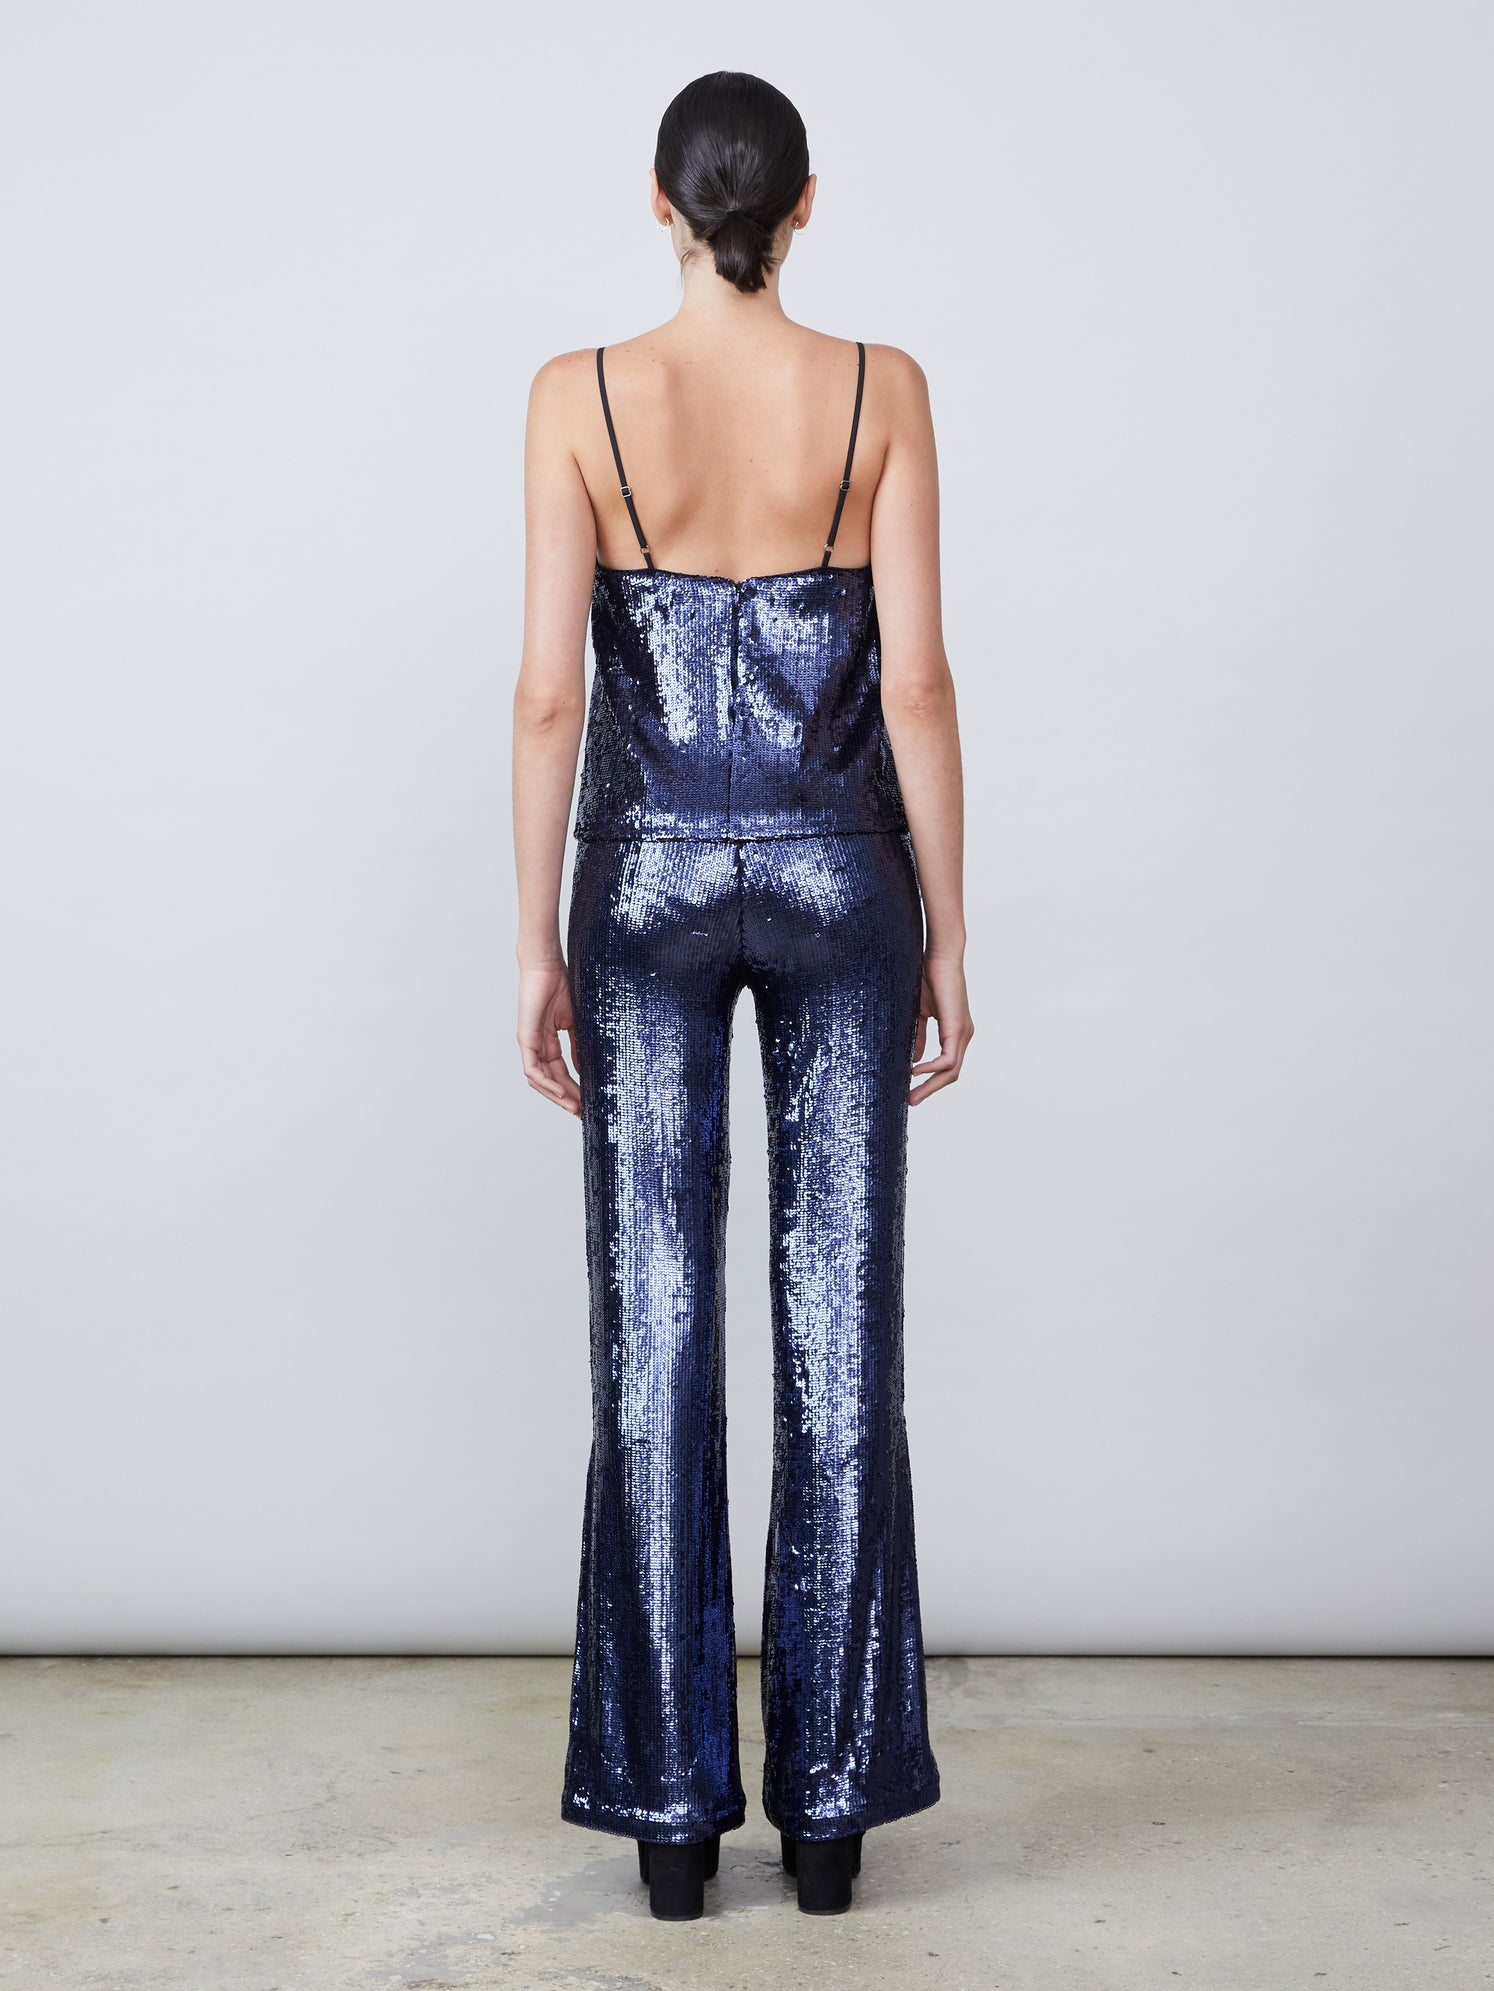 Sequin flared leg pant with exposed side zipper Alternate